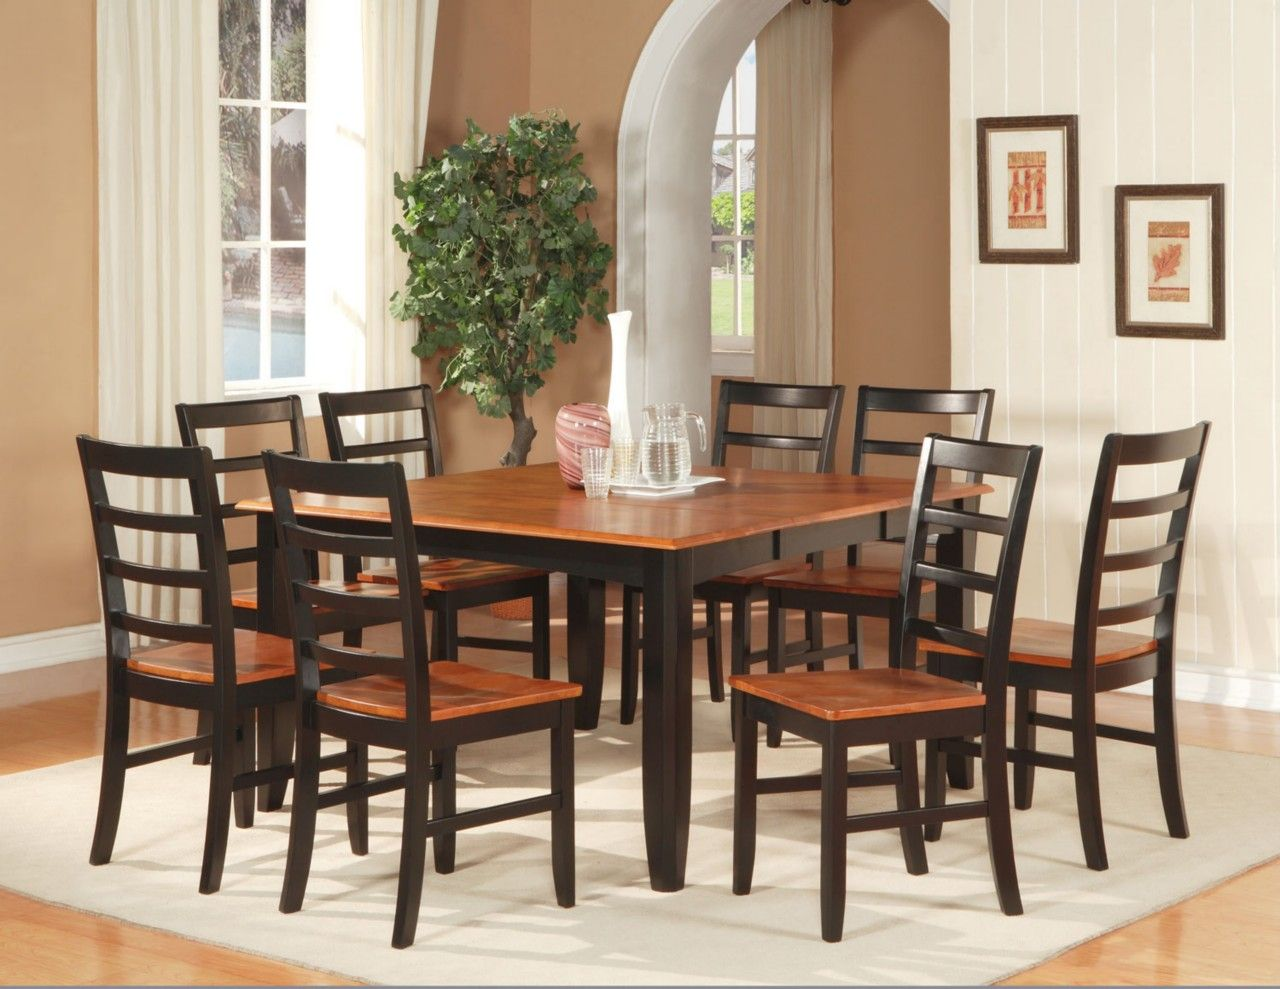 dining room tables – valuable information to get to know more about diningroom tables. dining room tables – valuable information to get to know more